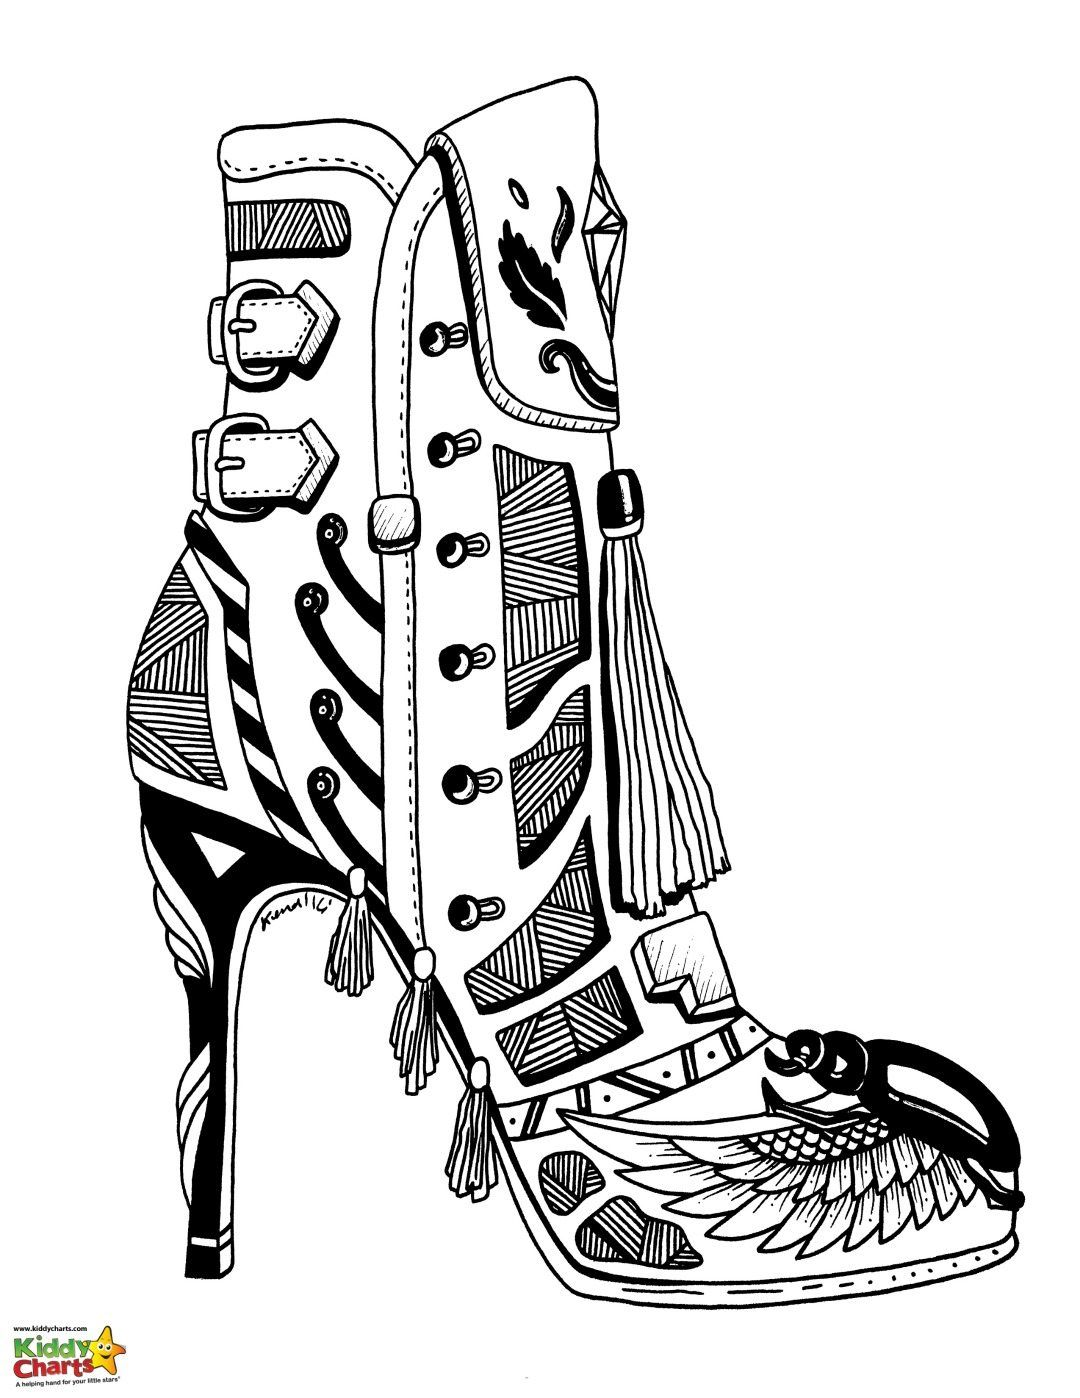 e498dbfd3abf11 Today we are sharing a couple of gorgeous high heel shoe colouring pages  for adults and